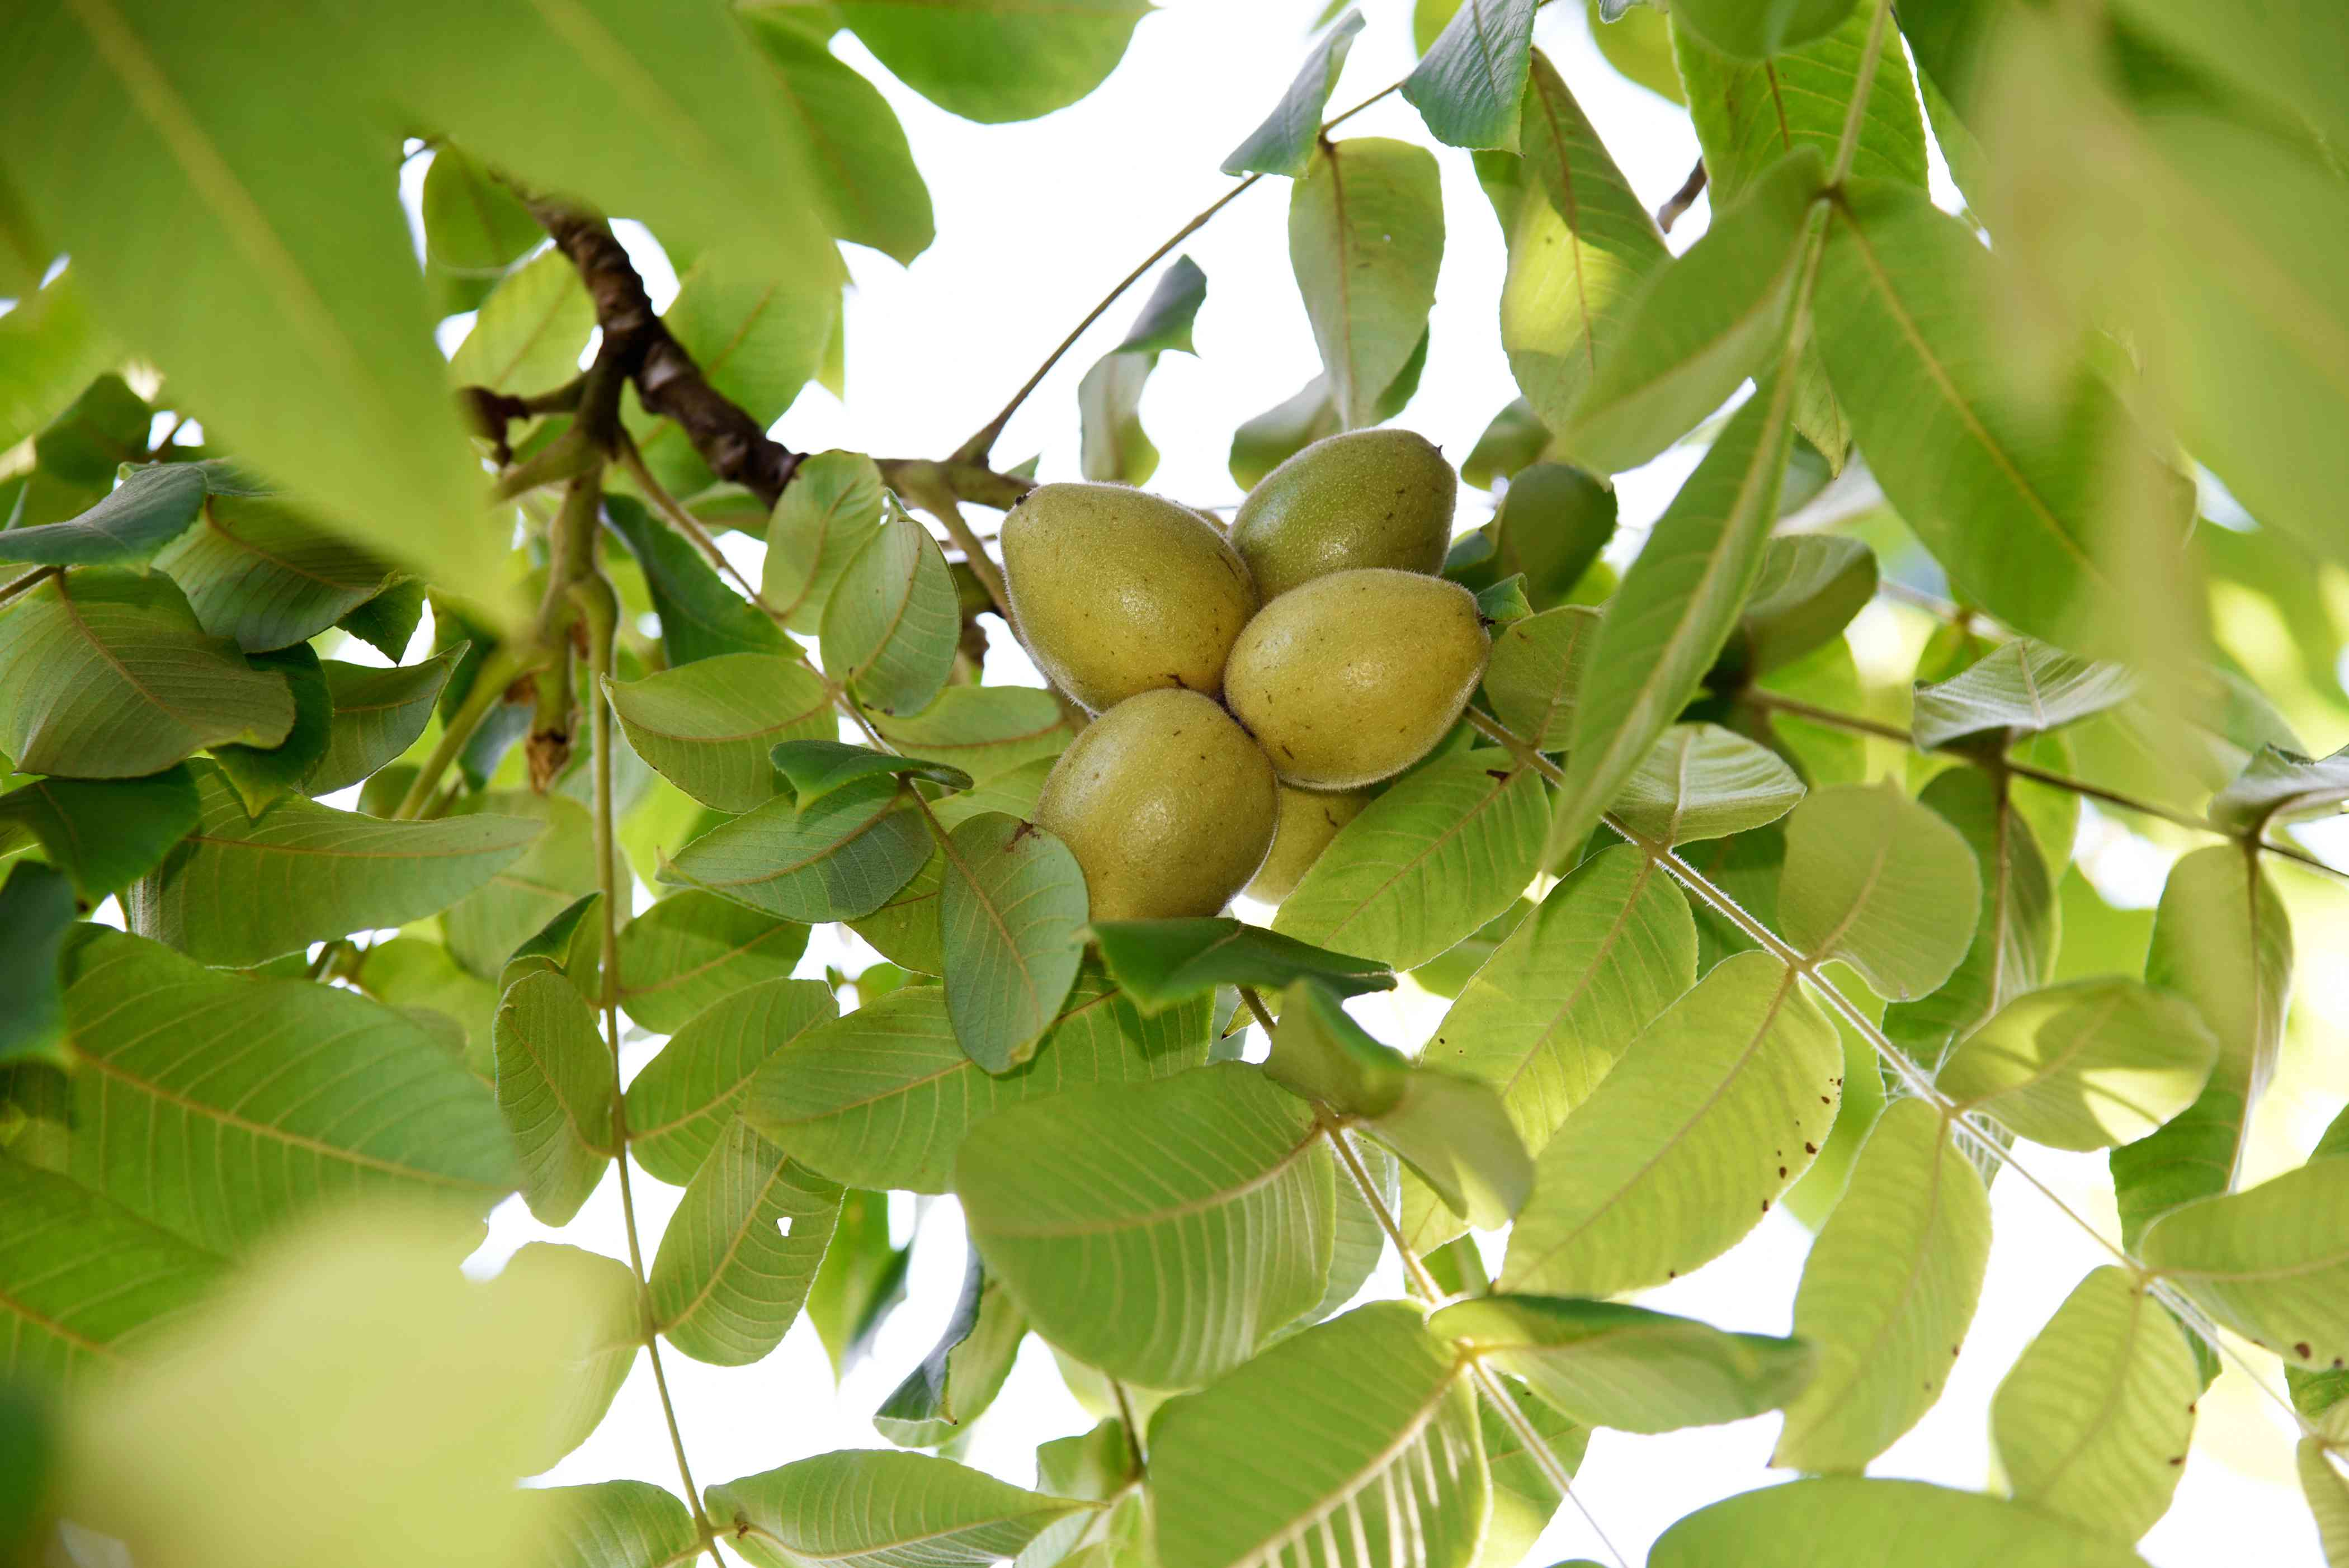 Butternut tree branches with yellowish-green nuts